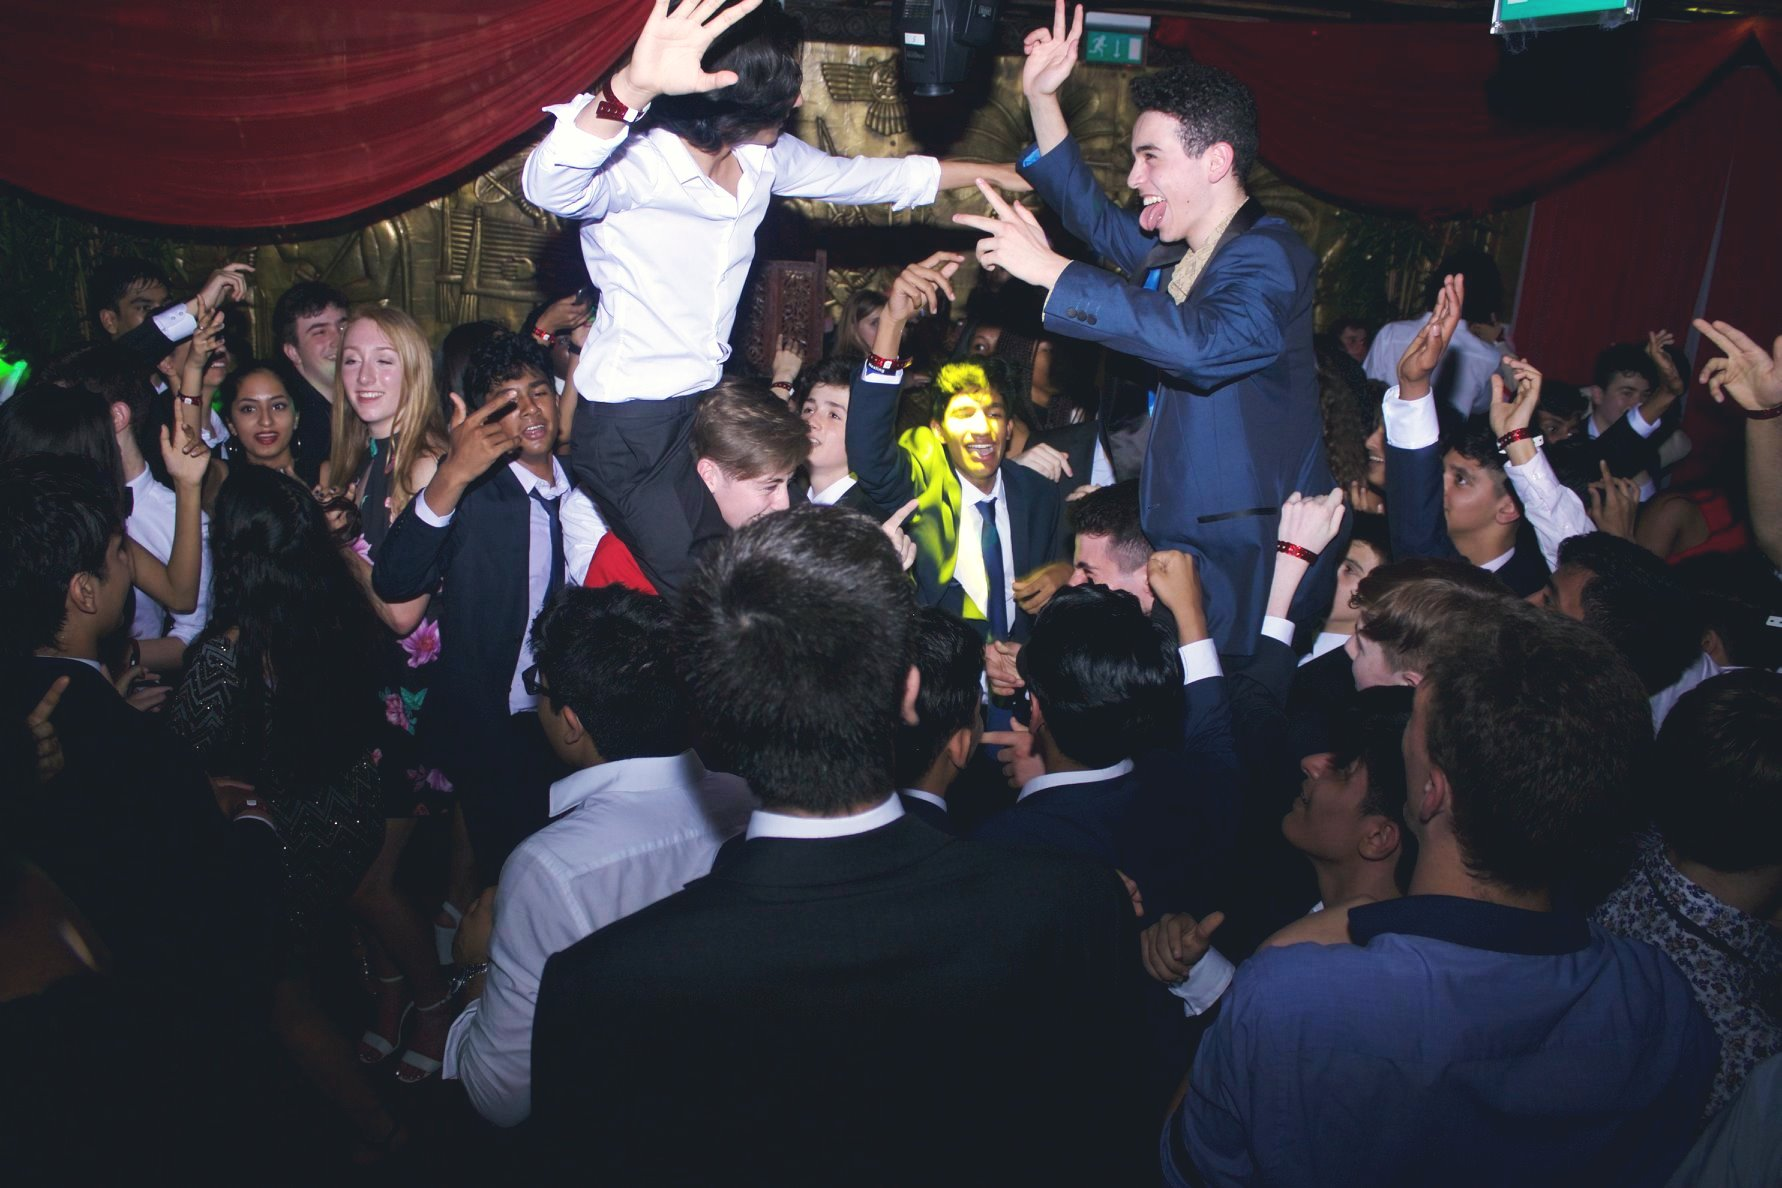 Everyone enjoyed DJ Jason Dupuy's performance at a Prom in Camden.